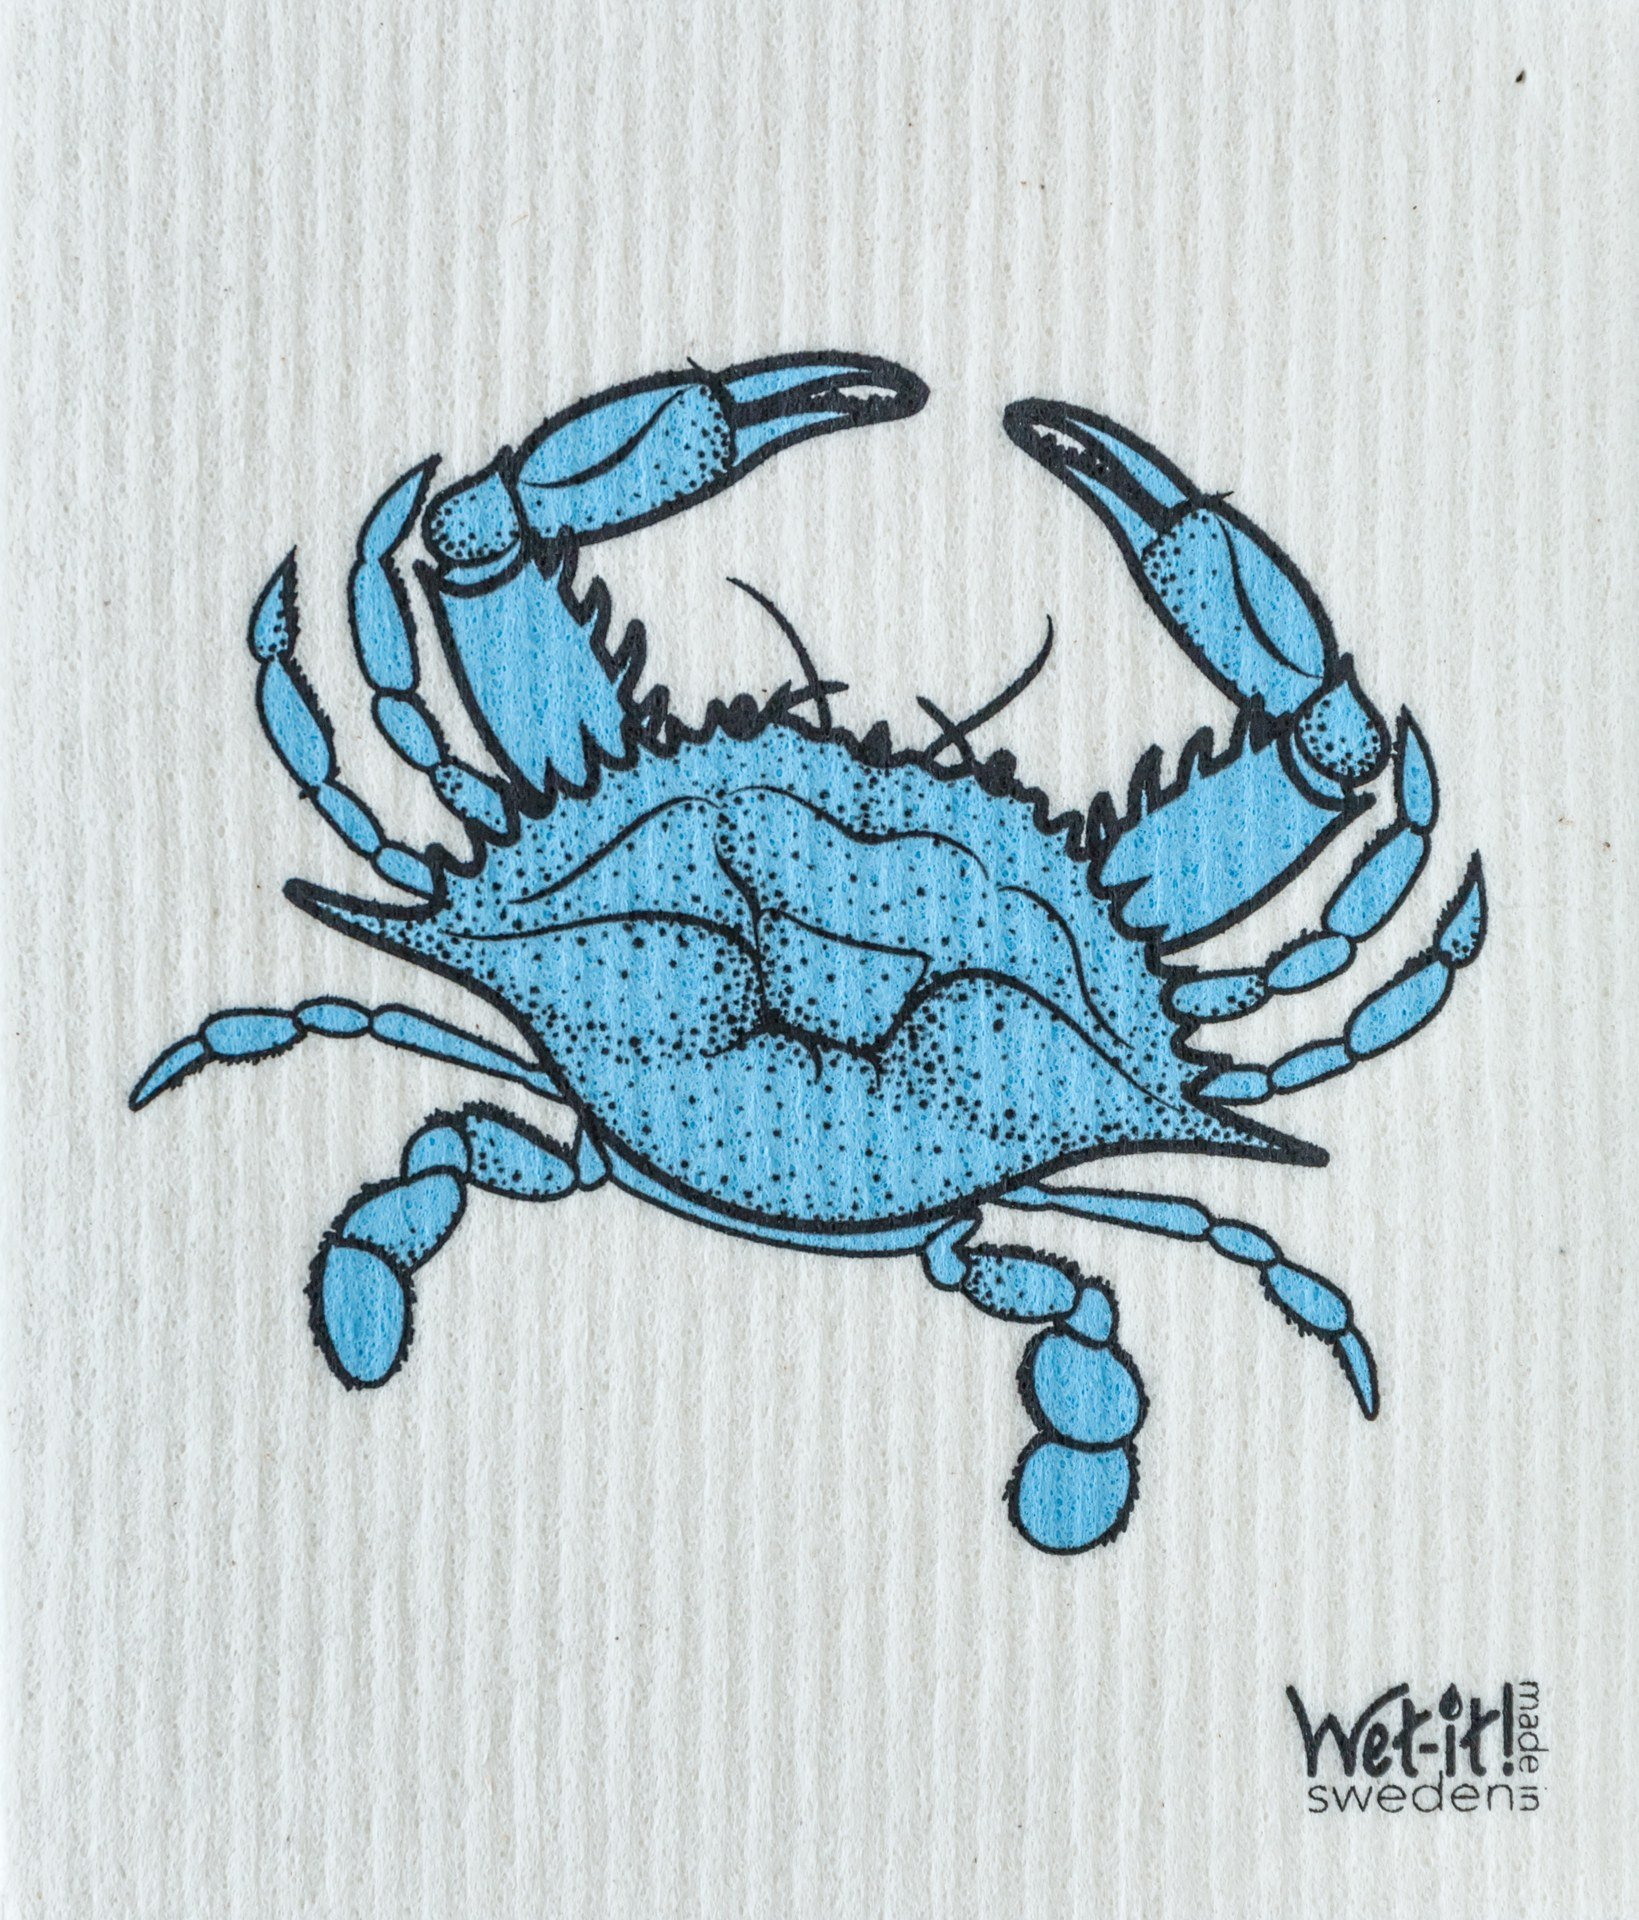 Wet-It Swedish Dishcloth Set of 2 (Lobster and Crab) by Wet-It (Image #2)